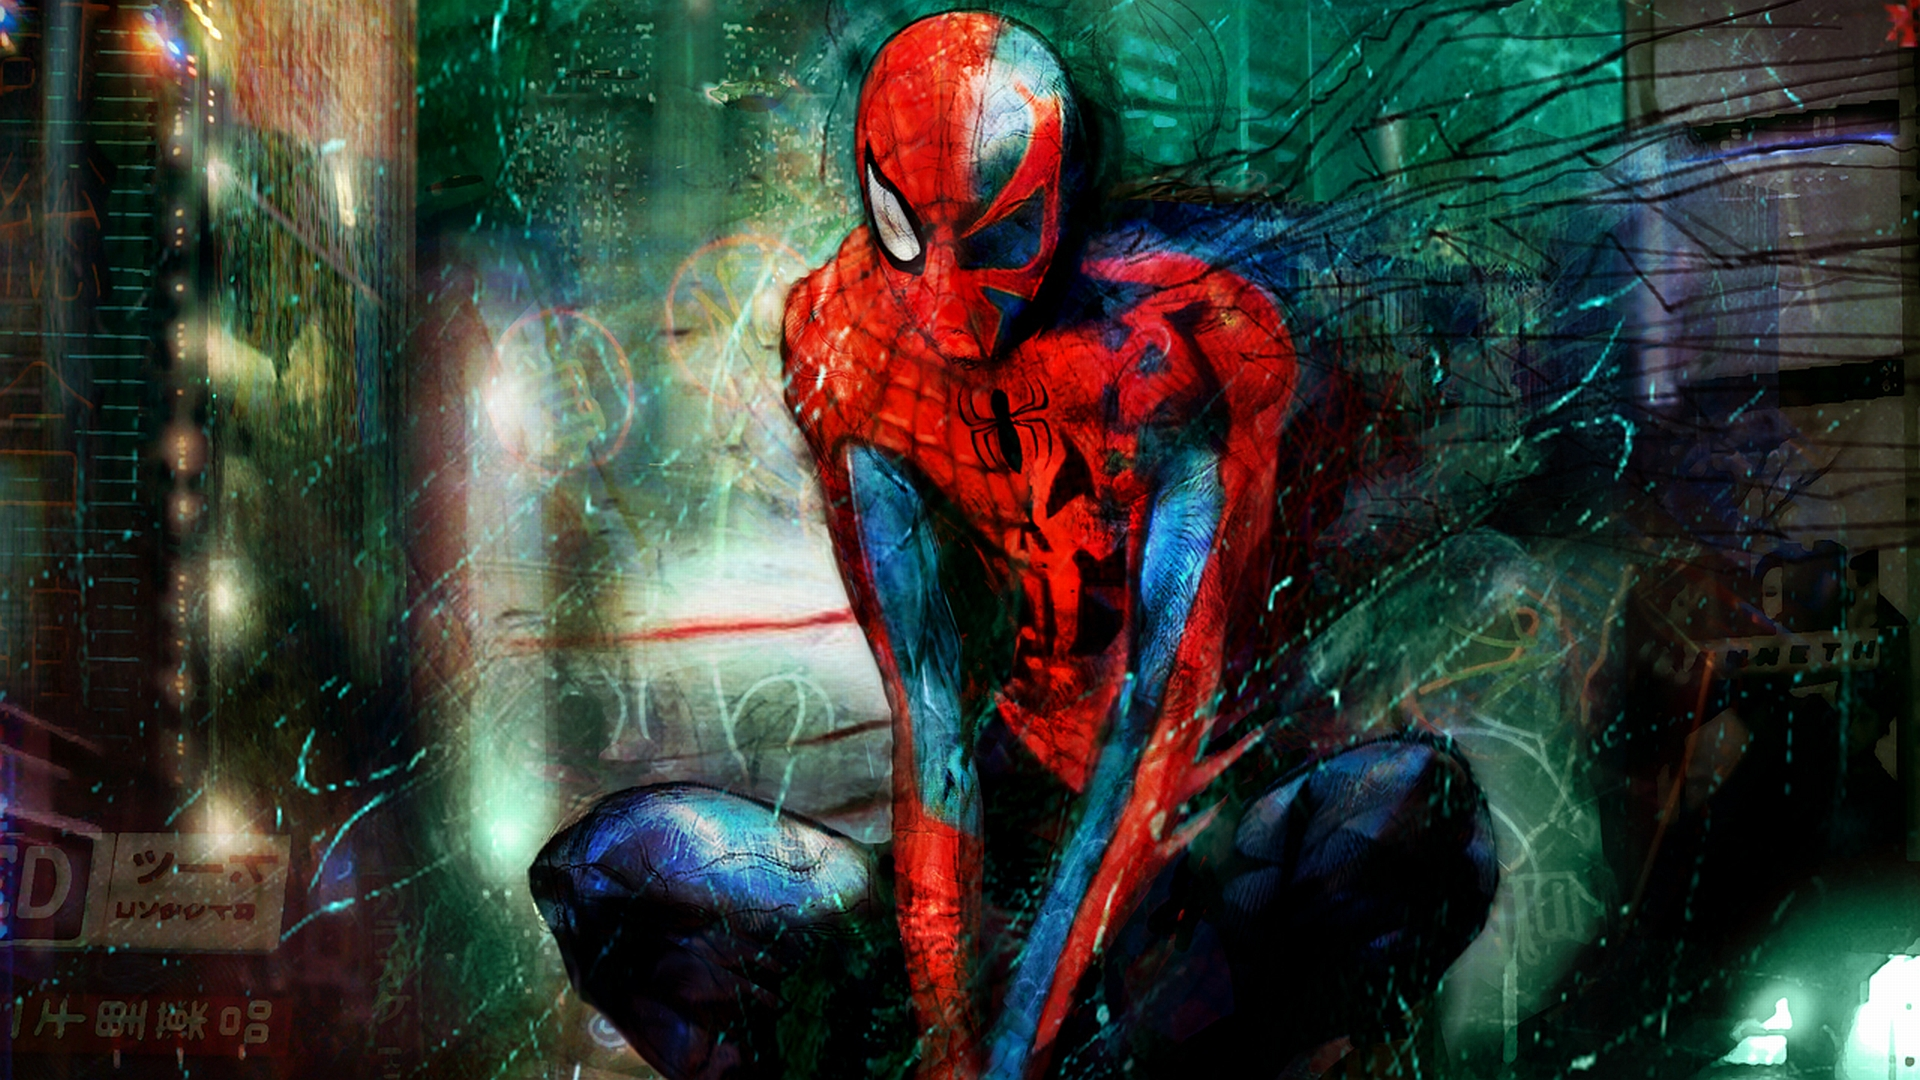 Cool Spiderman 2099 Wallpaper: 40 Amazing Spiderman Wallpaper HD For PC